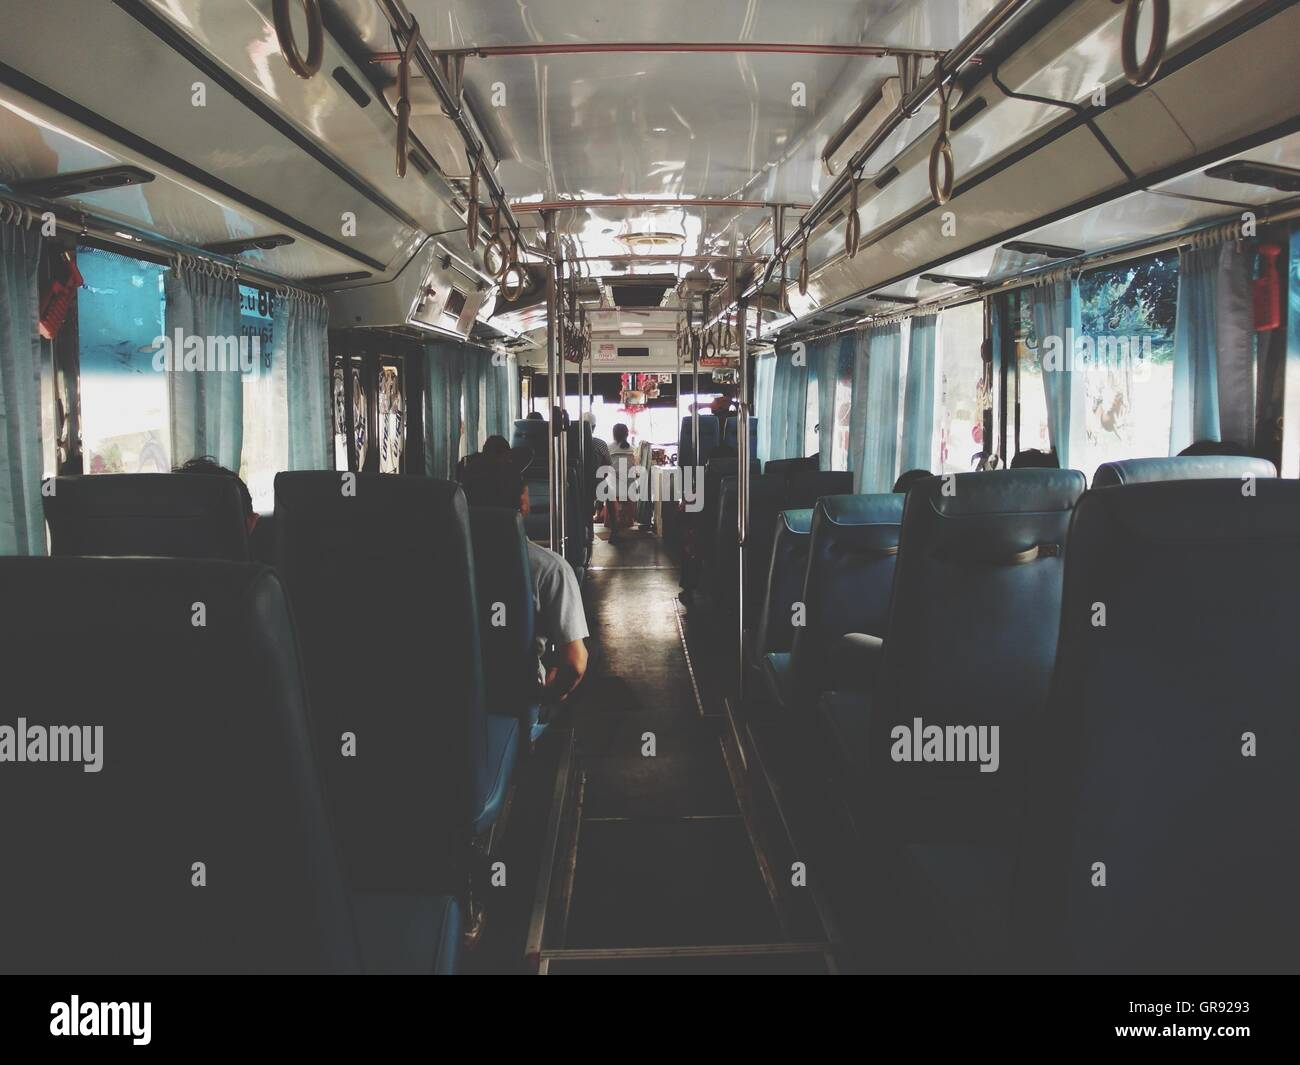 Tour Bus Interior With Incidental People